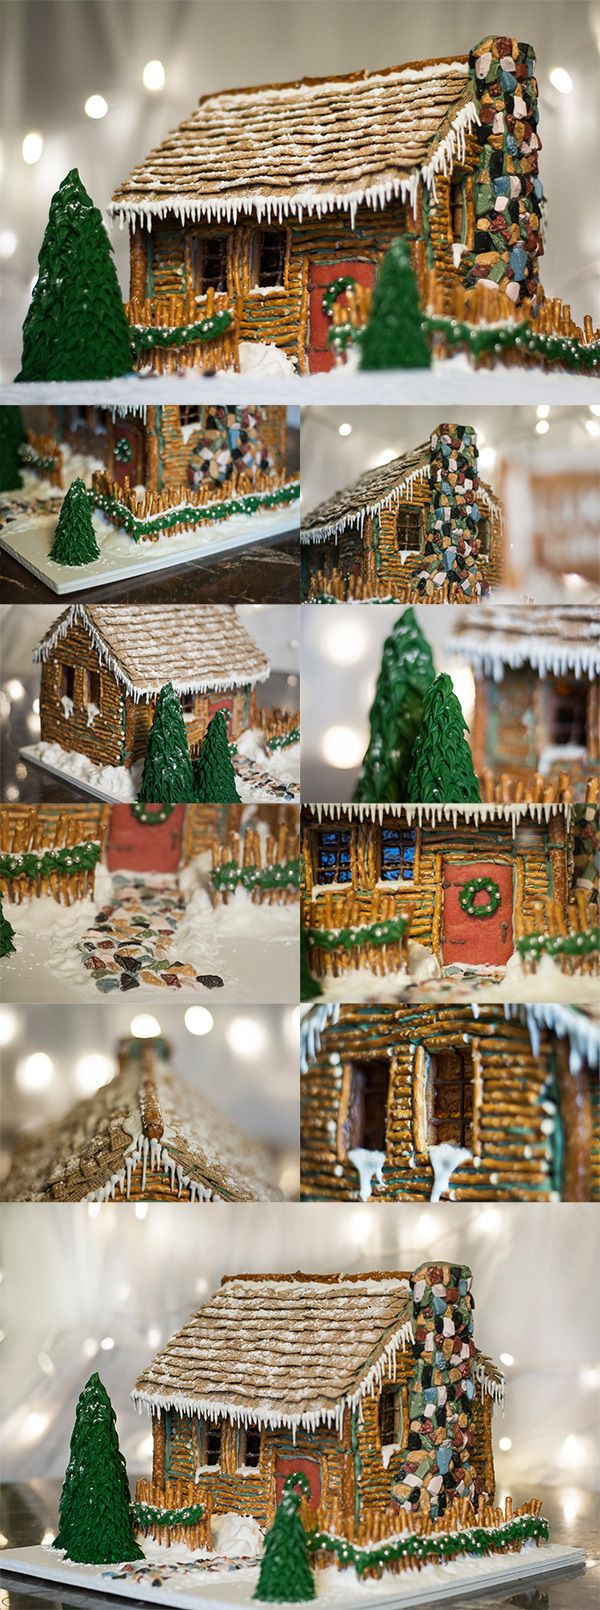 """Christmas Log Cabin"" by Kaitlin L. (Standout Execution). Cute little decoration! Maybe I'll have this someday. (:"